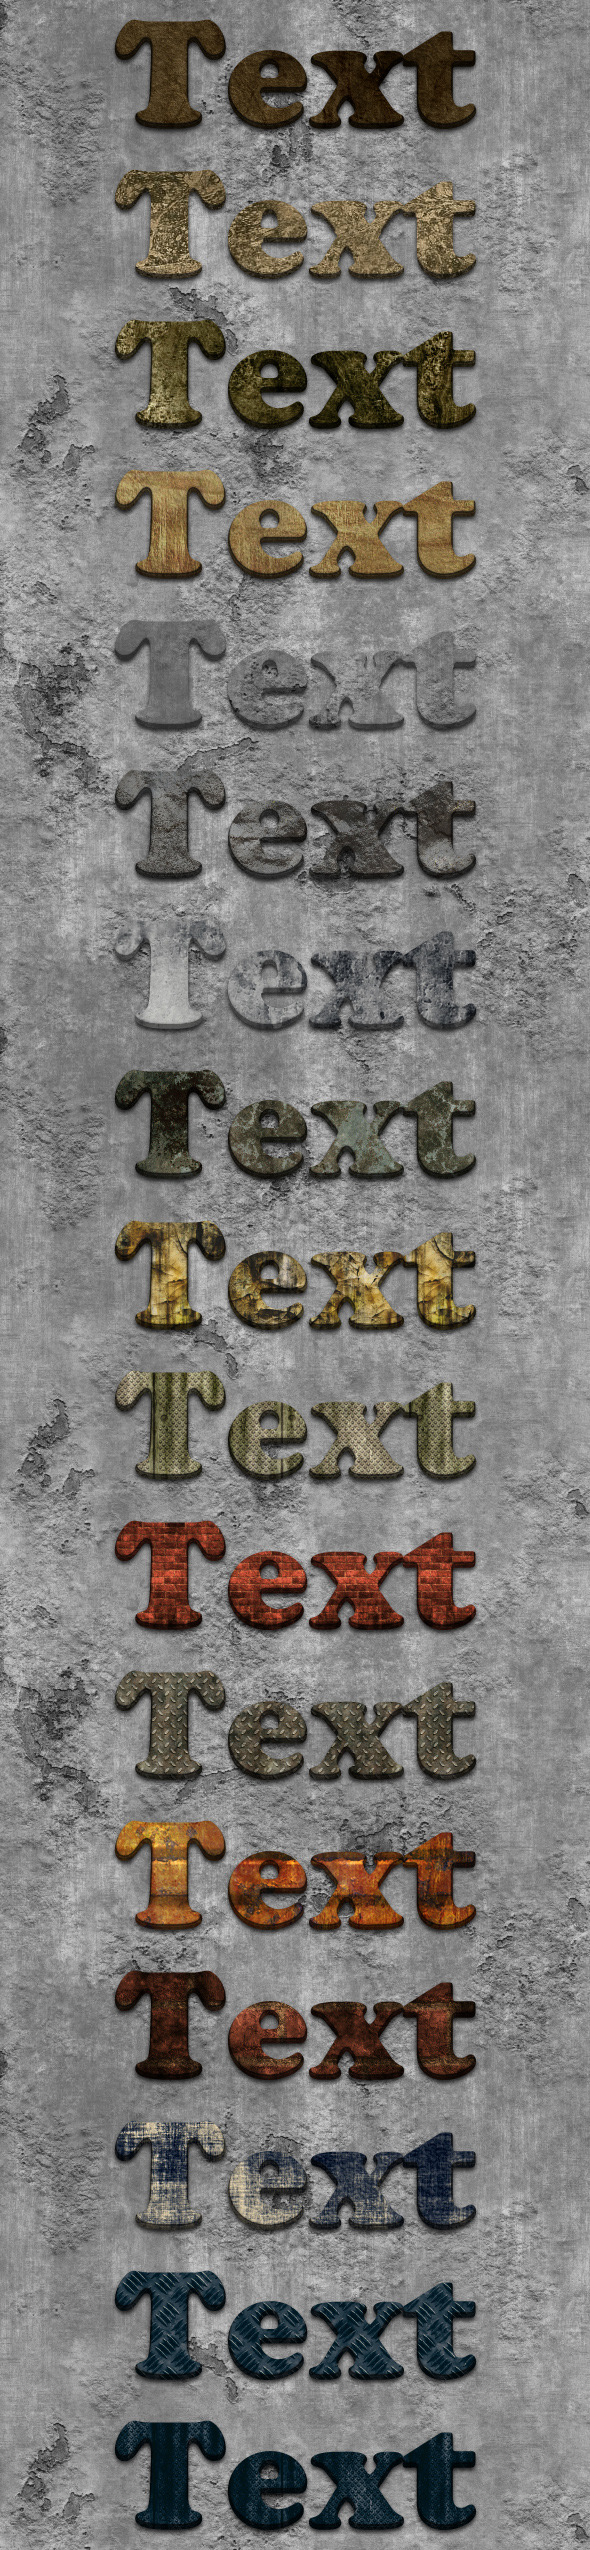 3D Grungy Styles - Text Effects Styles